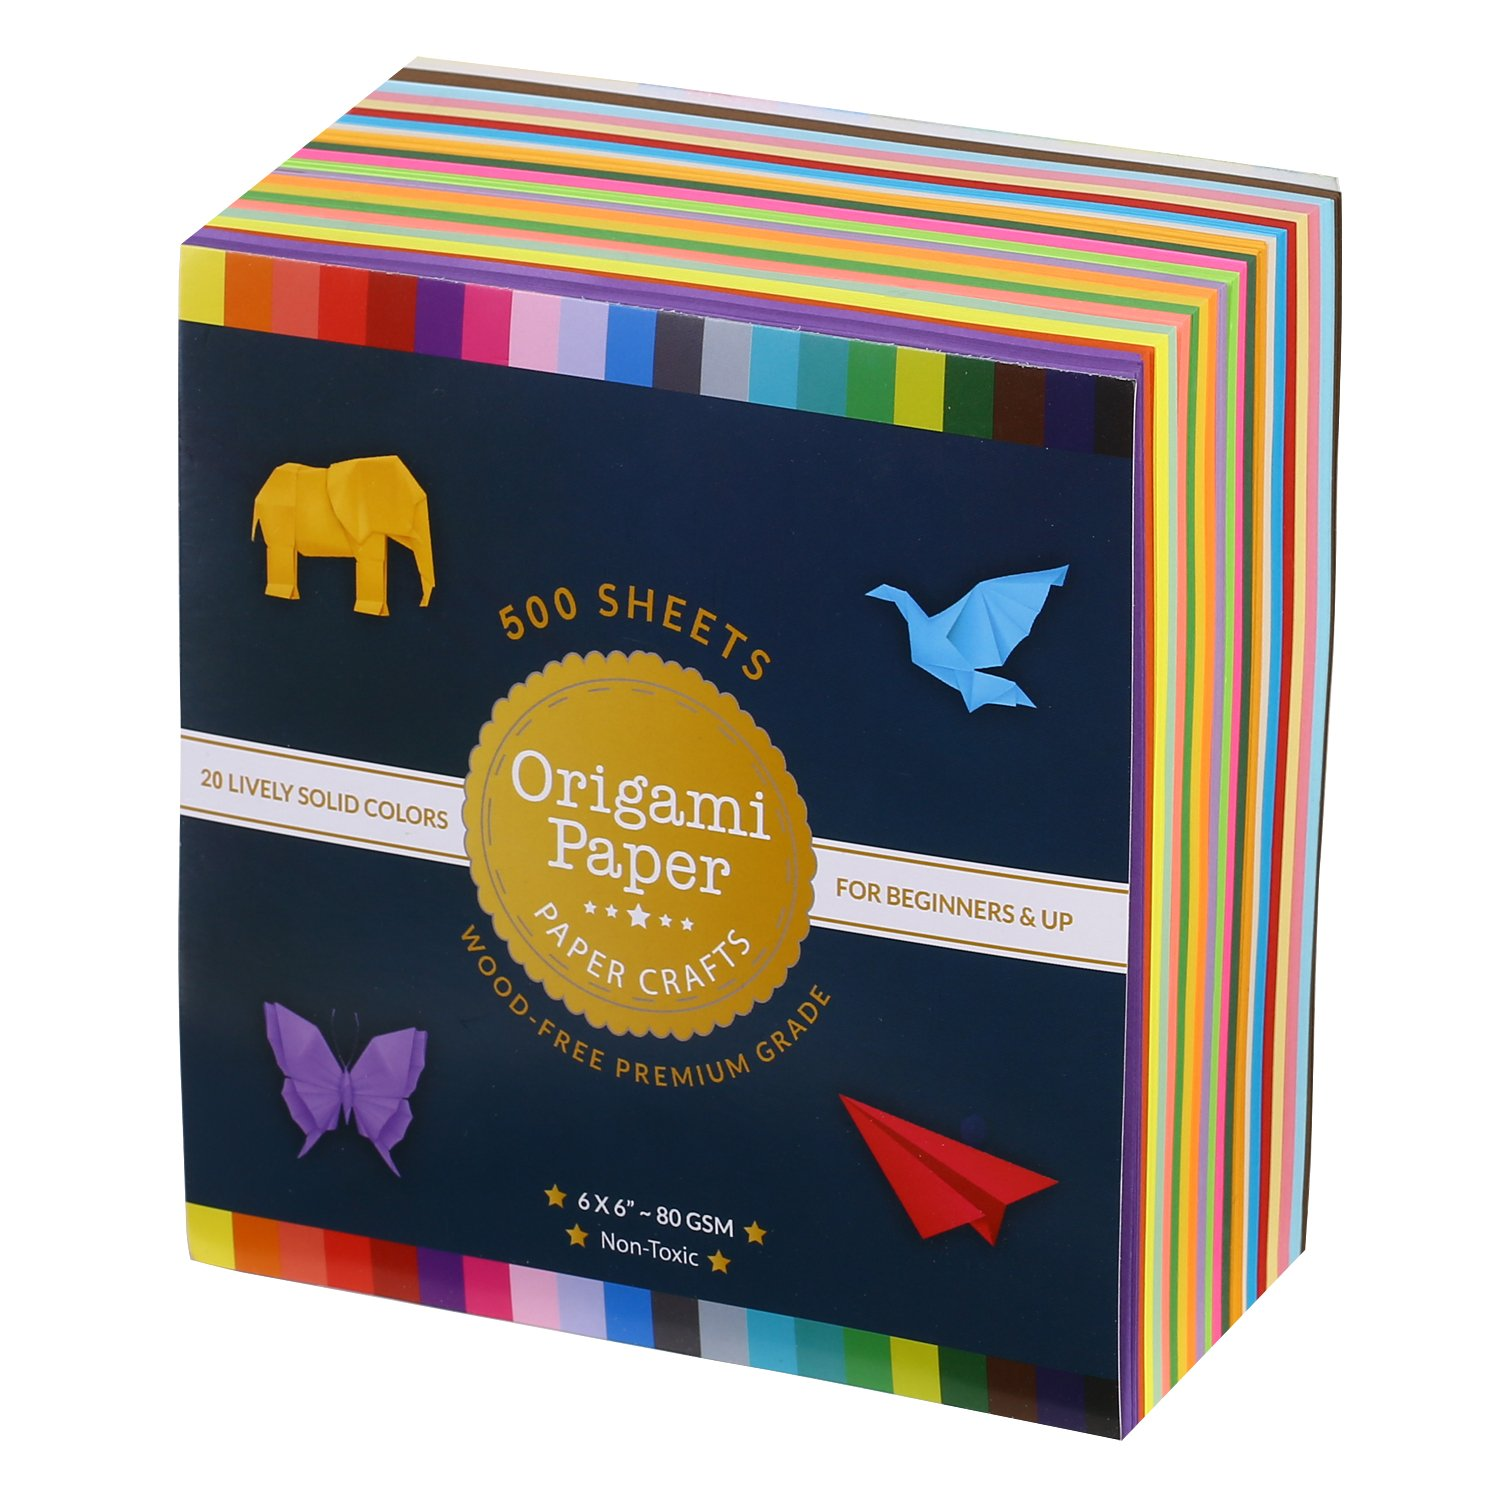 Origami Paper Double Sided Color 500 Sheets - 20 Colors with 6 inch Square Size for Art Projects BUBU ORI-500